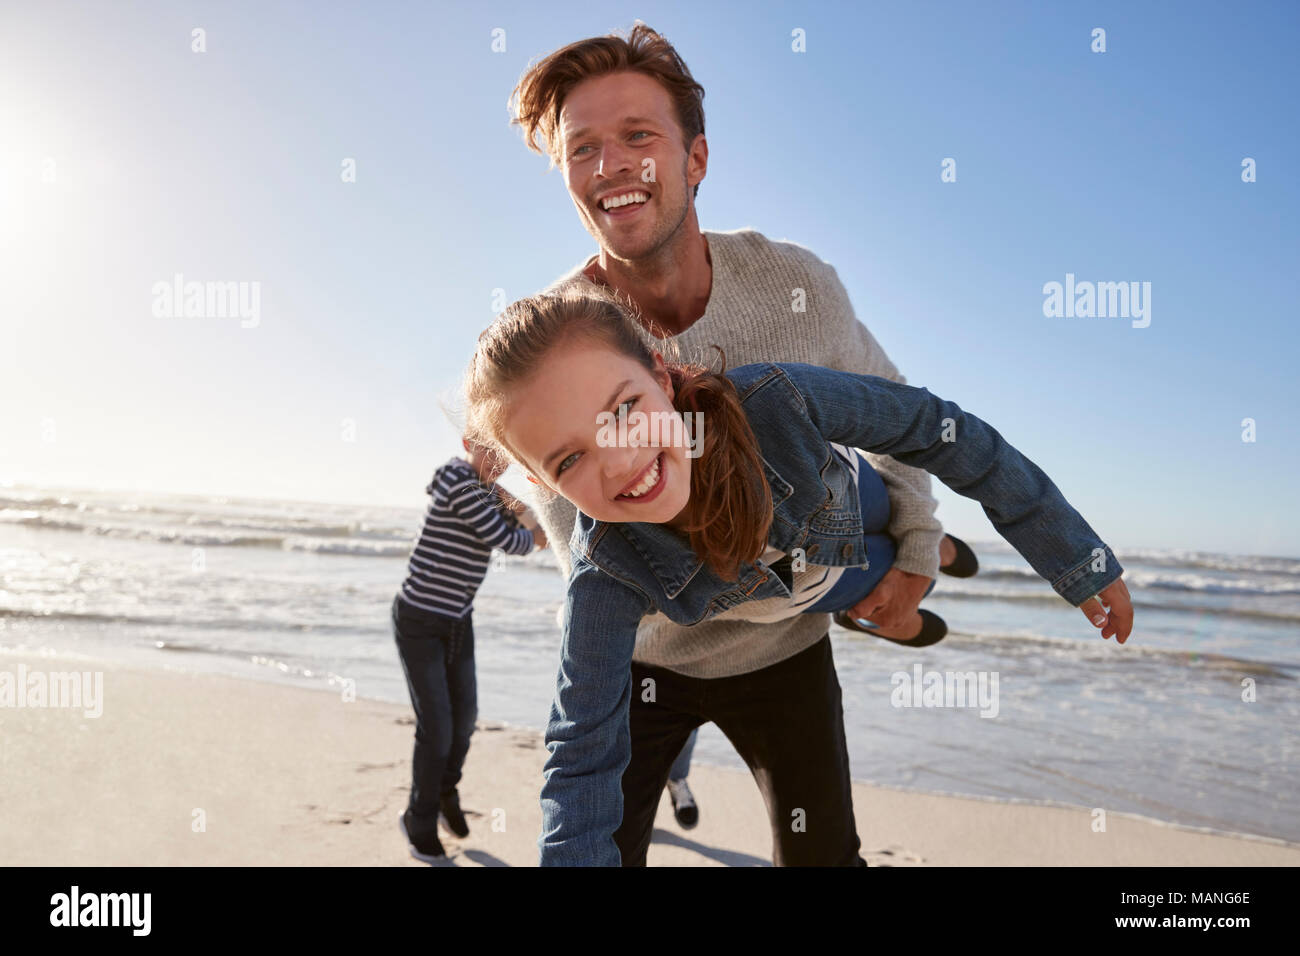 Father With Children Having Fun On Winter Beach Together - Stock Image